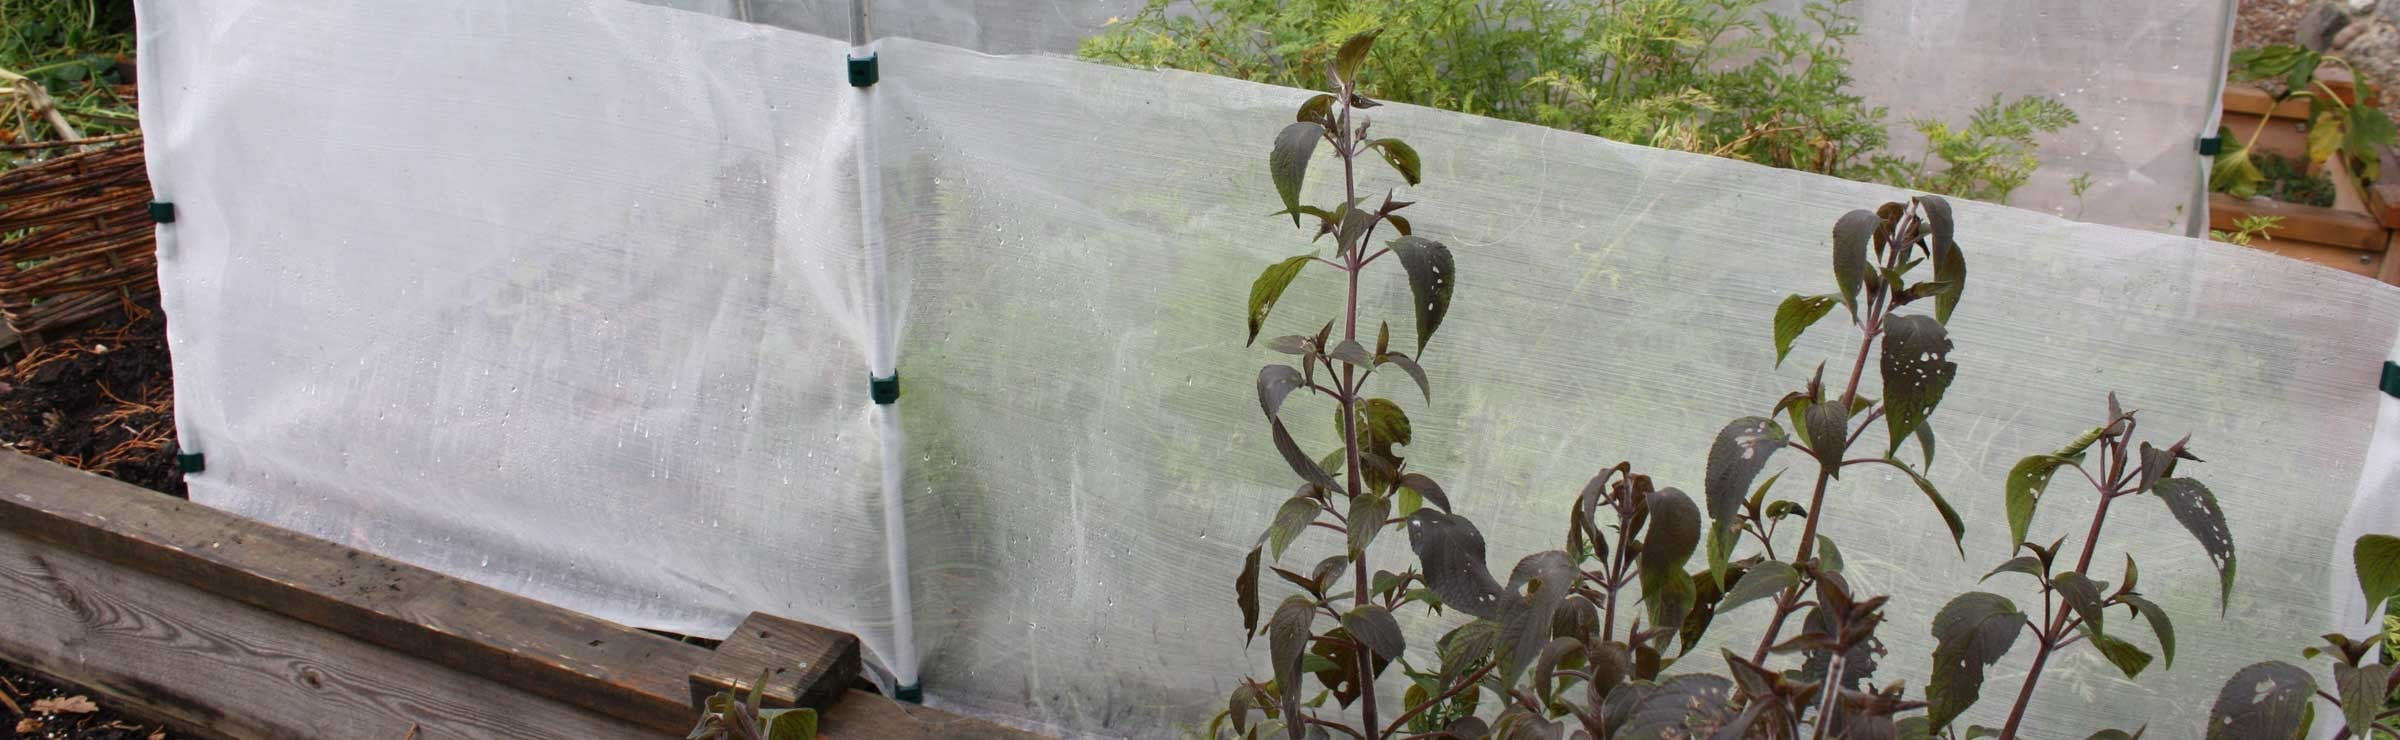 Insect Traps, Barriers & Sprays